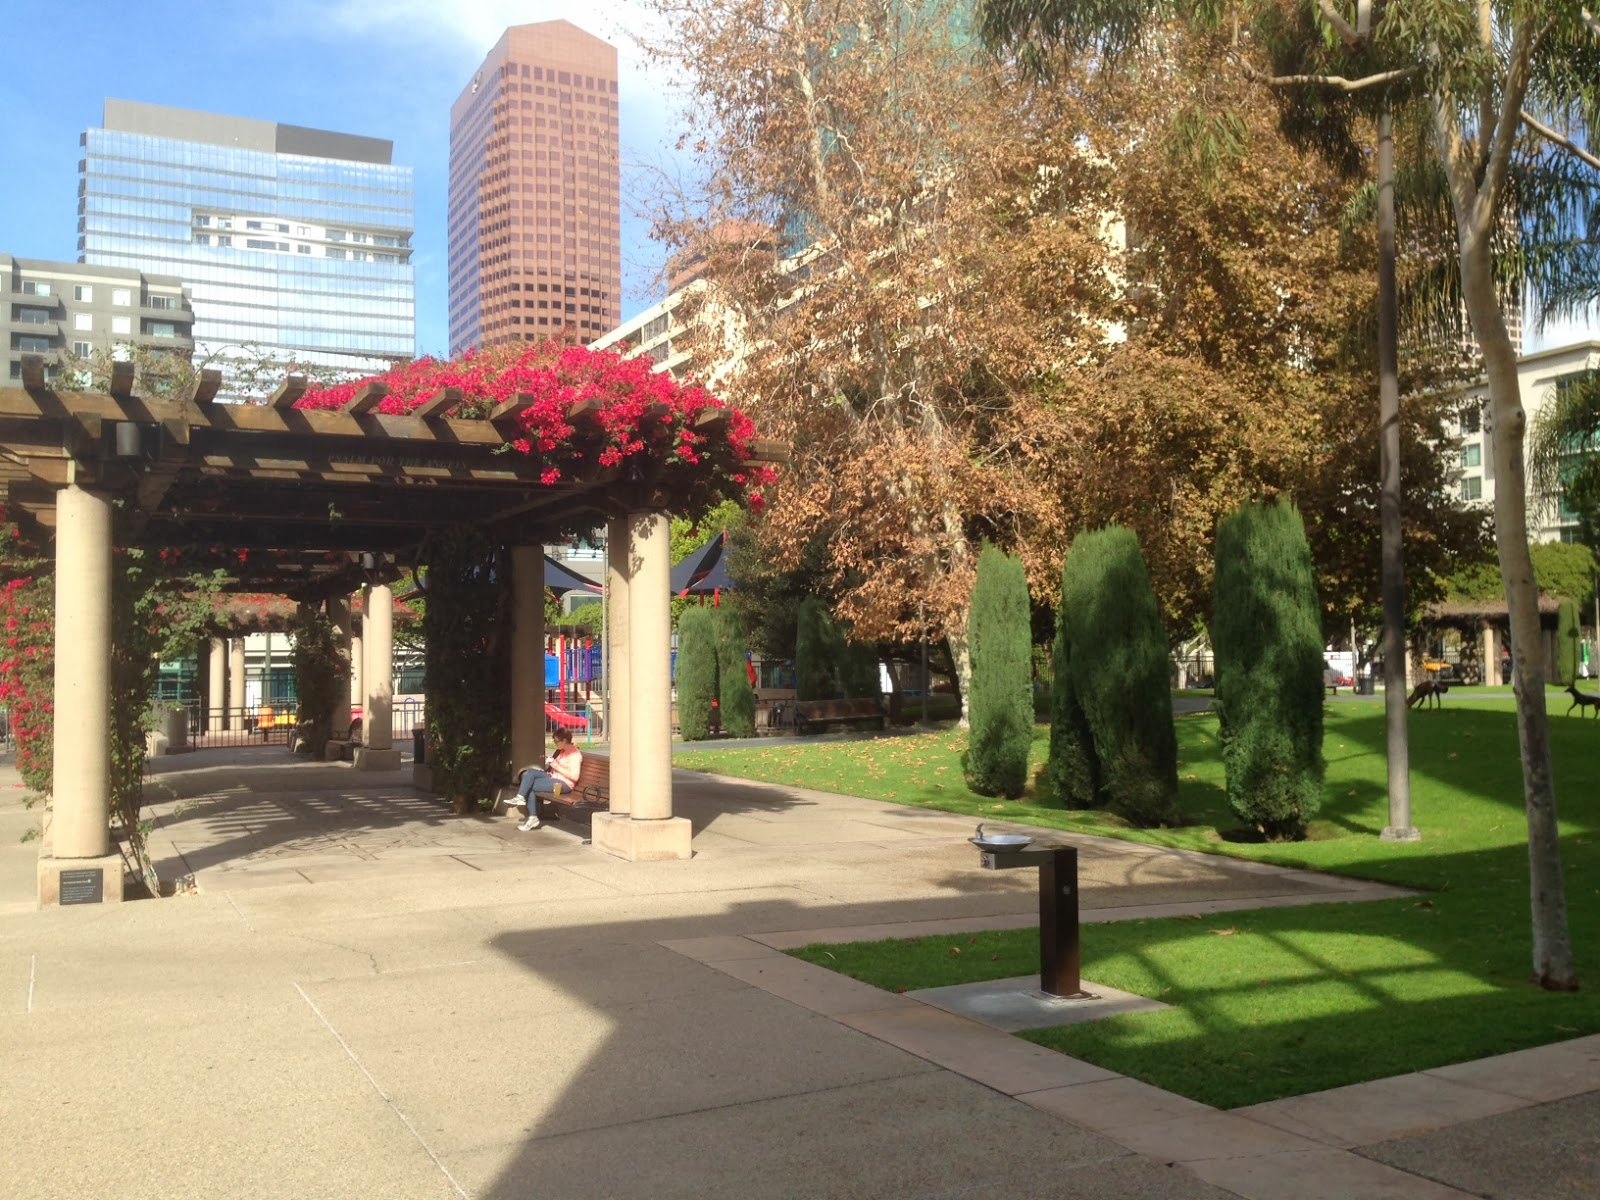 The World on Wheels: The Secret Gardens of Downtown Los Angeles